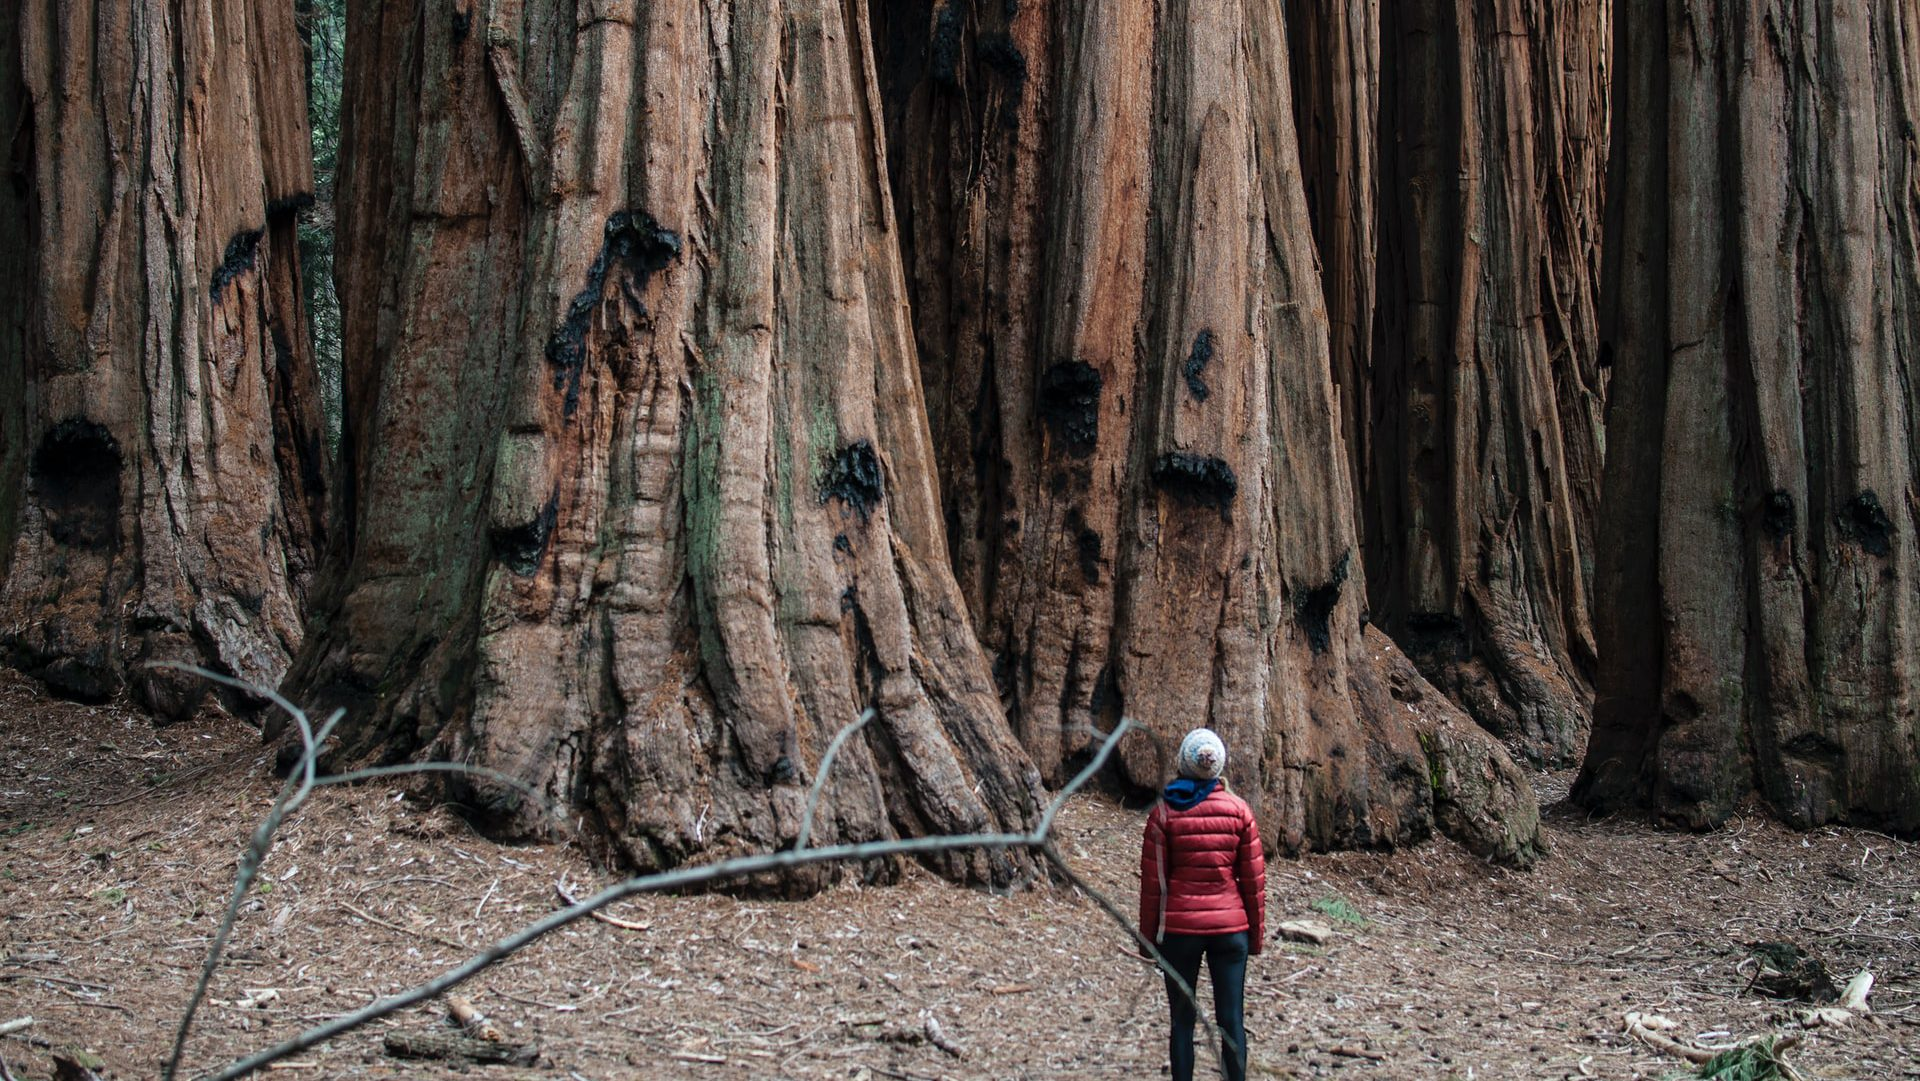 You'll be astounded by the intact beauty of Sequoia National Park in California